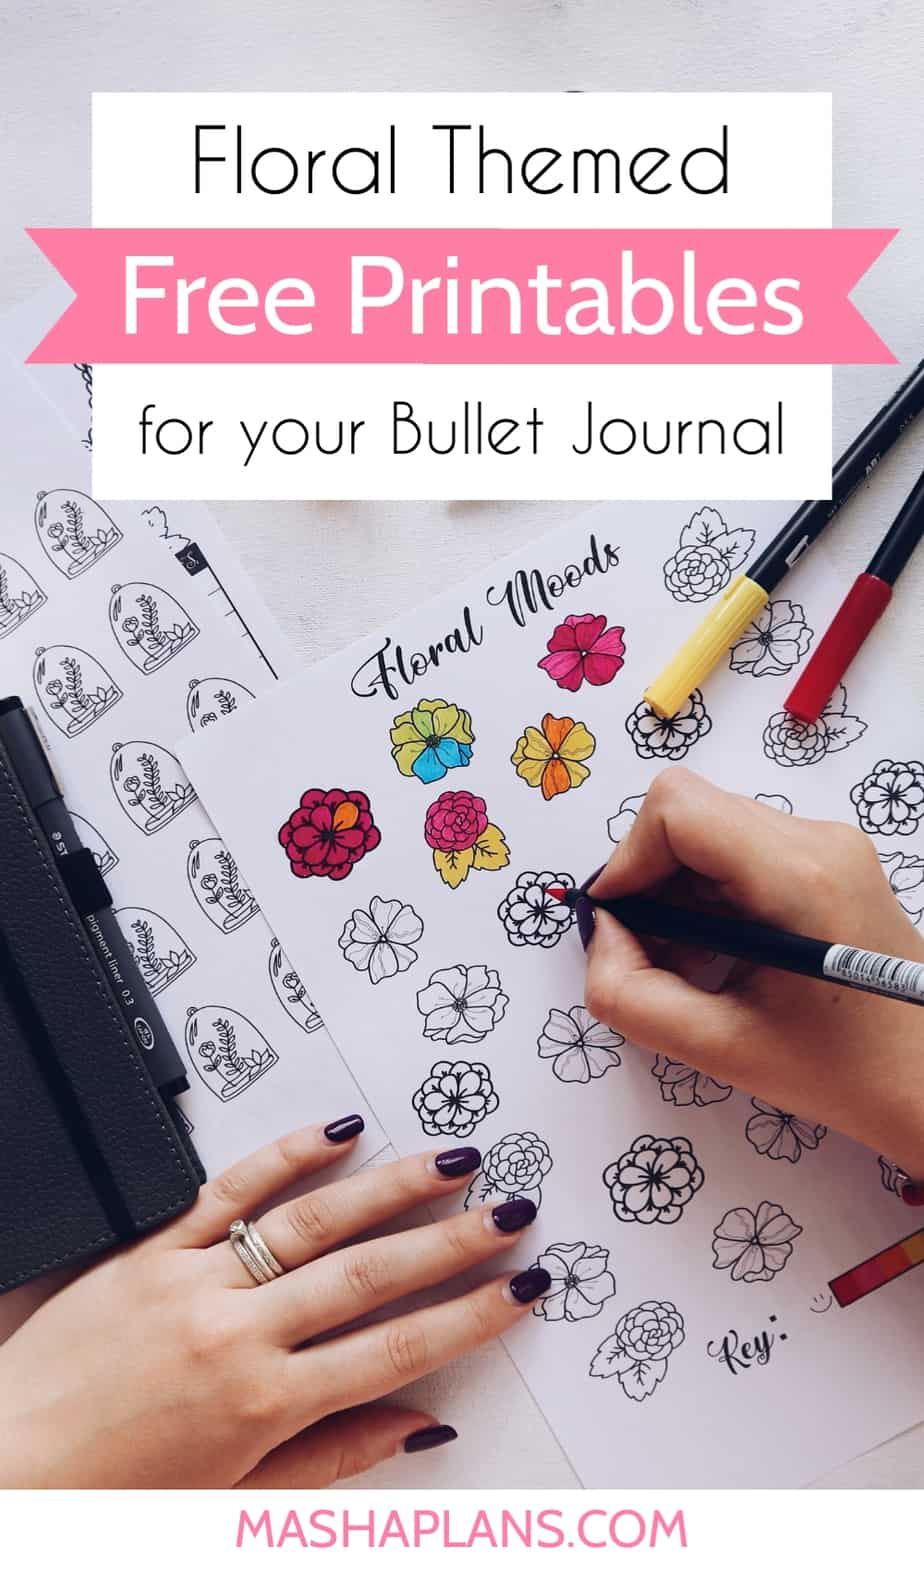 Floral Themed Free Printables For Your Bullet Journal   Masha Plans